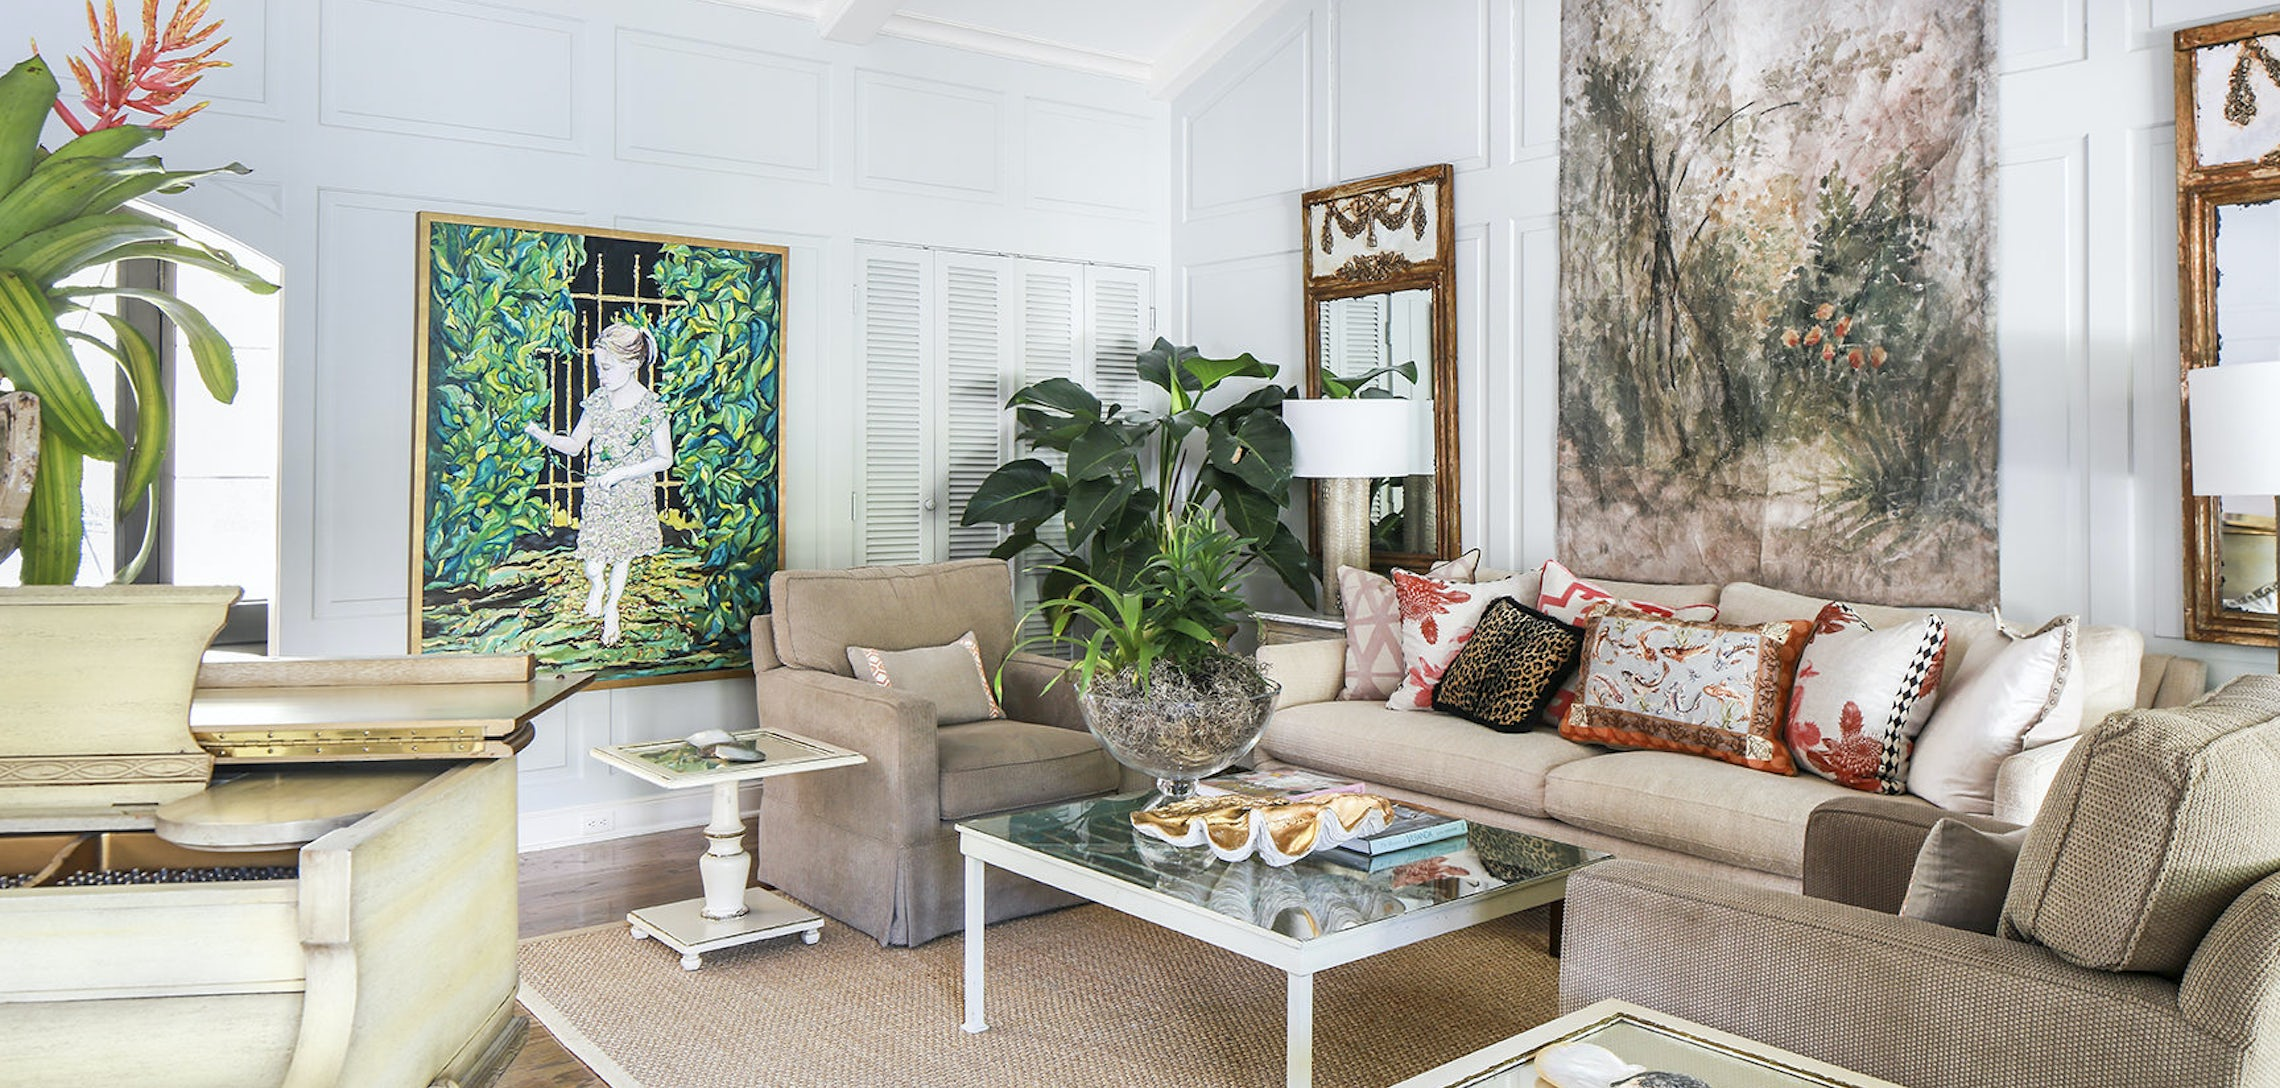 Kristin designed the living room around a grand piano that originally belonged to her grandmother the large scale artworks in this vaulted ceiling space